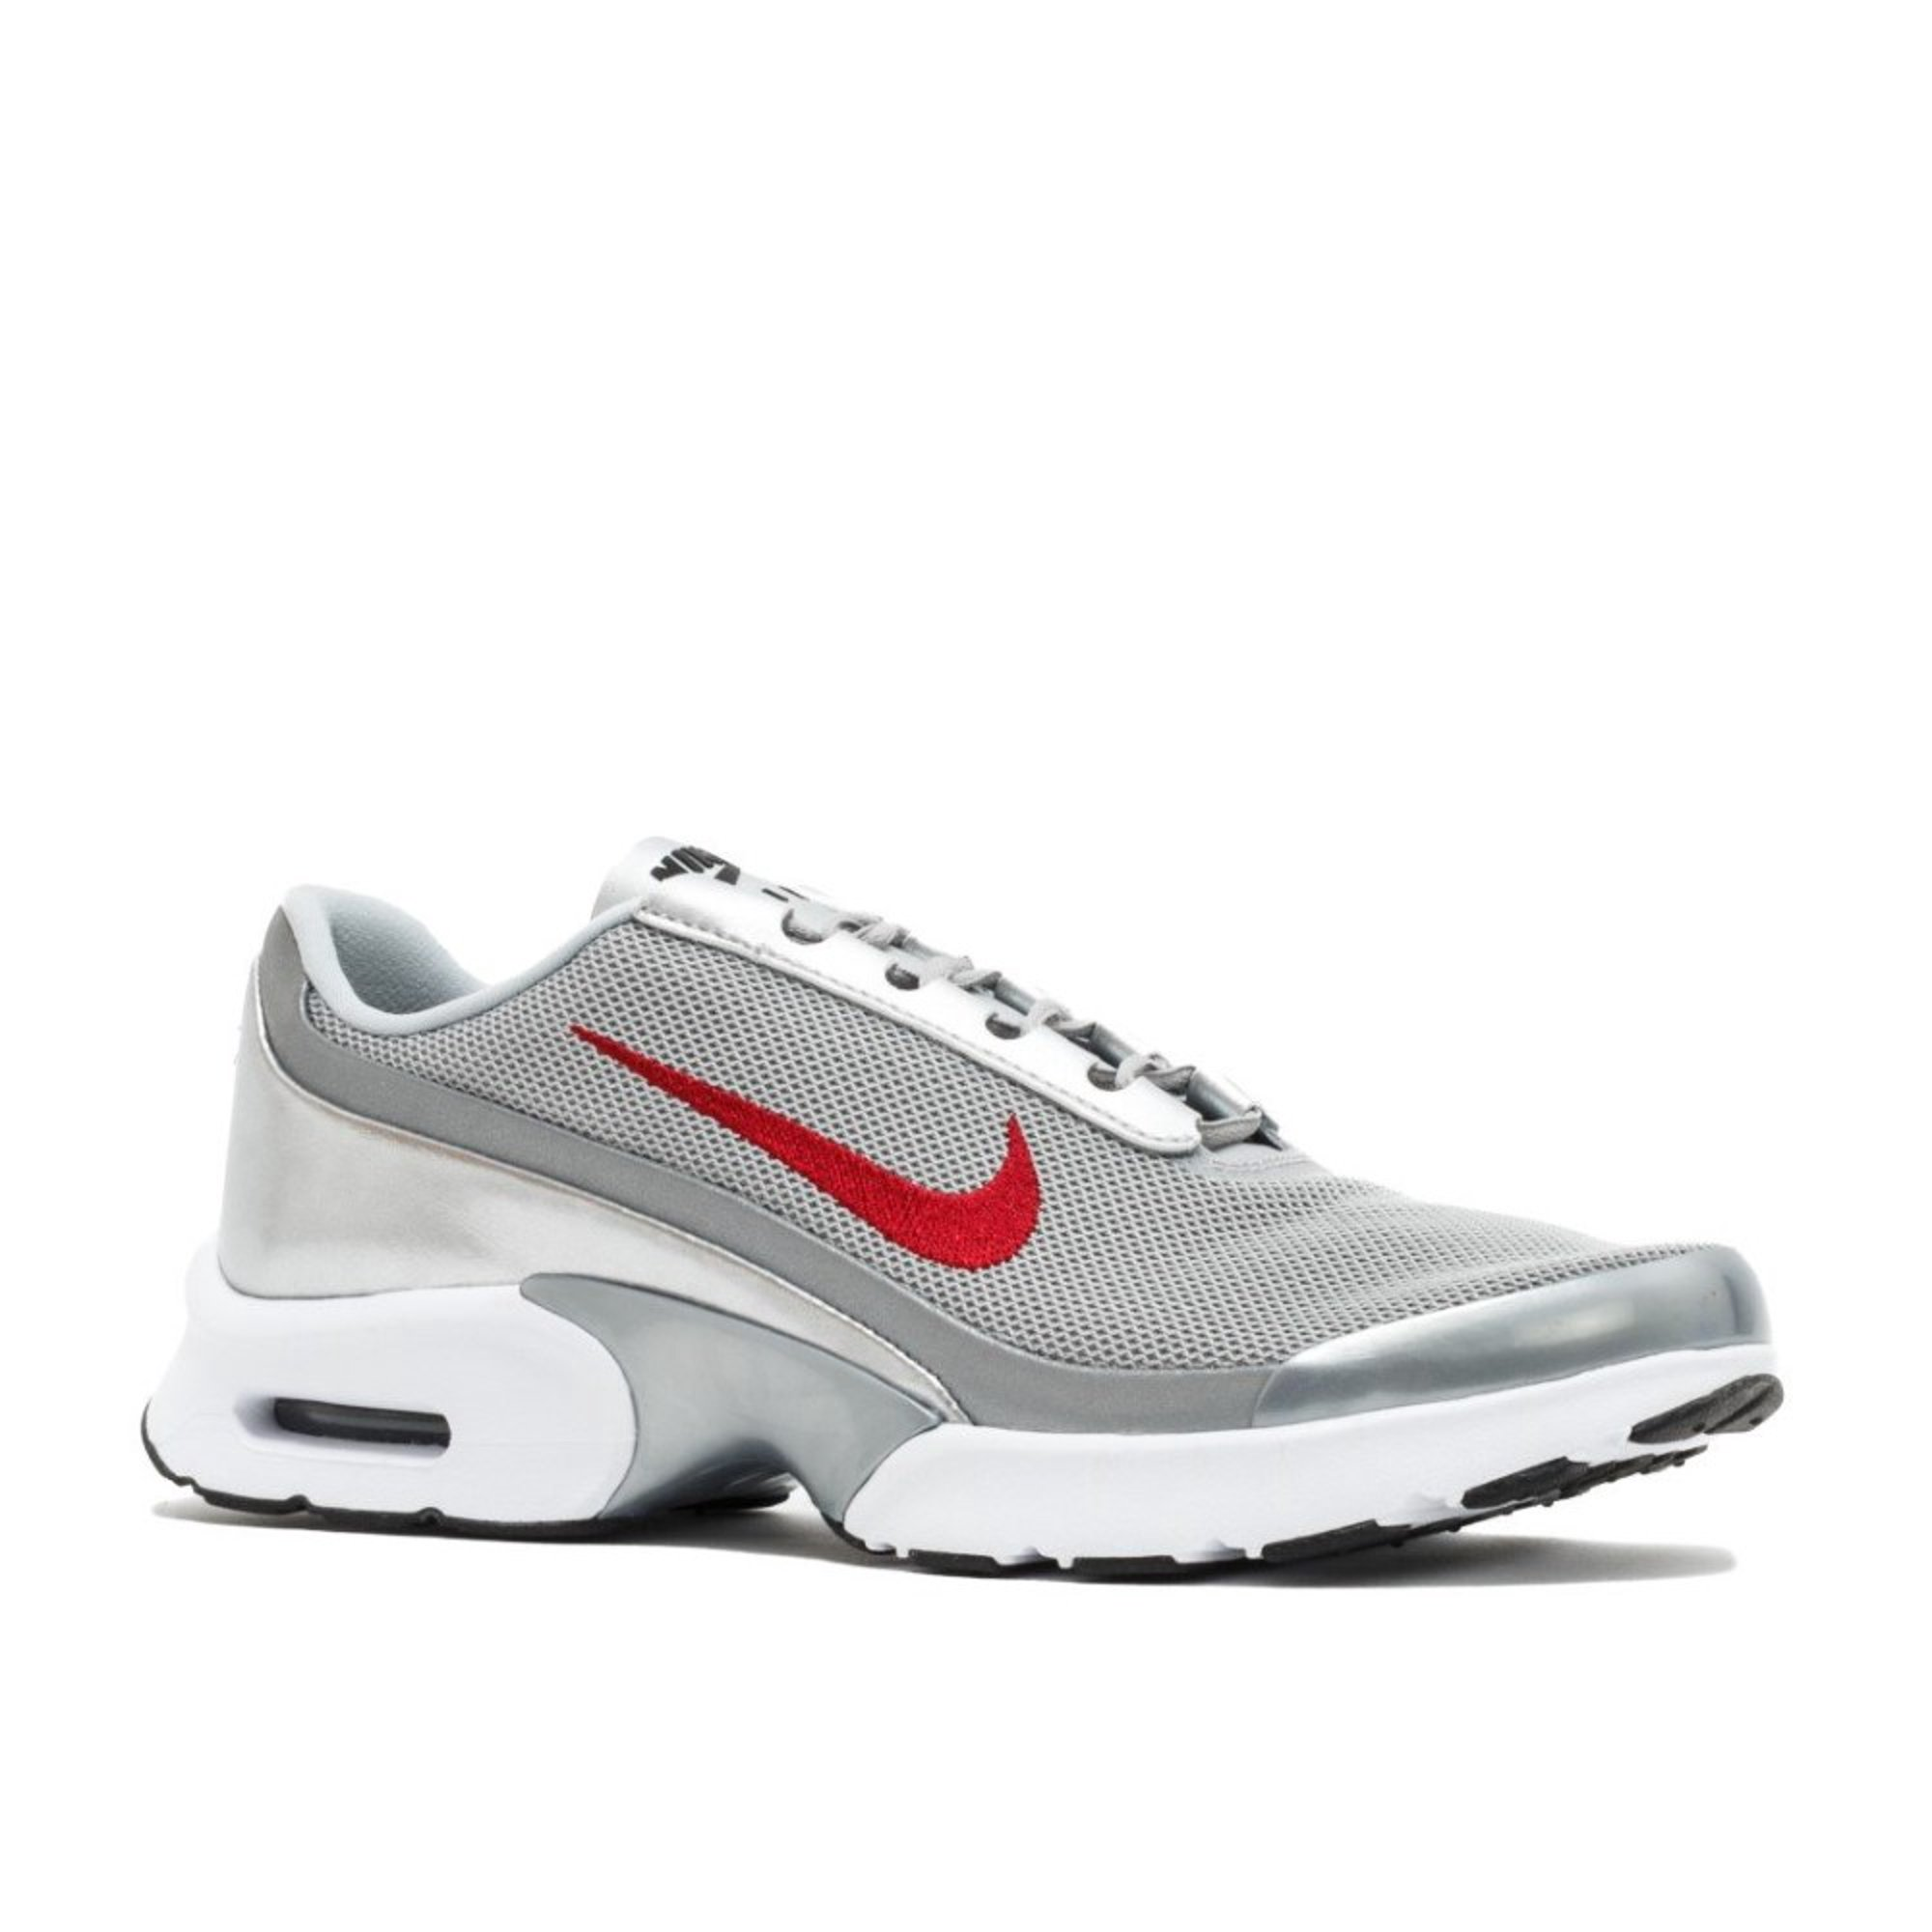 Nike Men Nike Air Max Jewell Qs 'Silver Bullet' 910313 001 Size 8